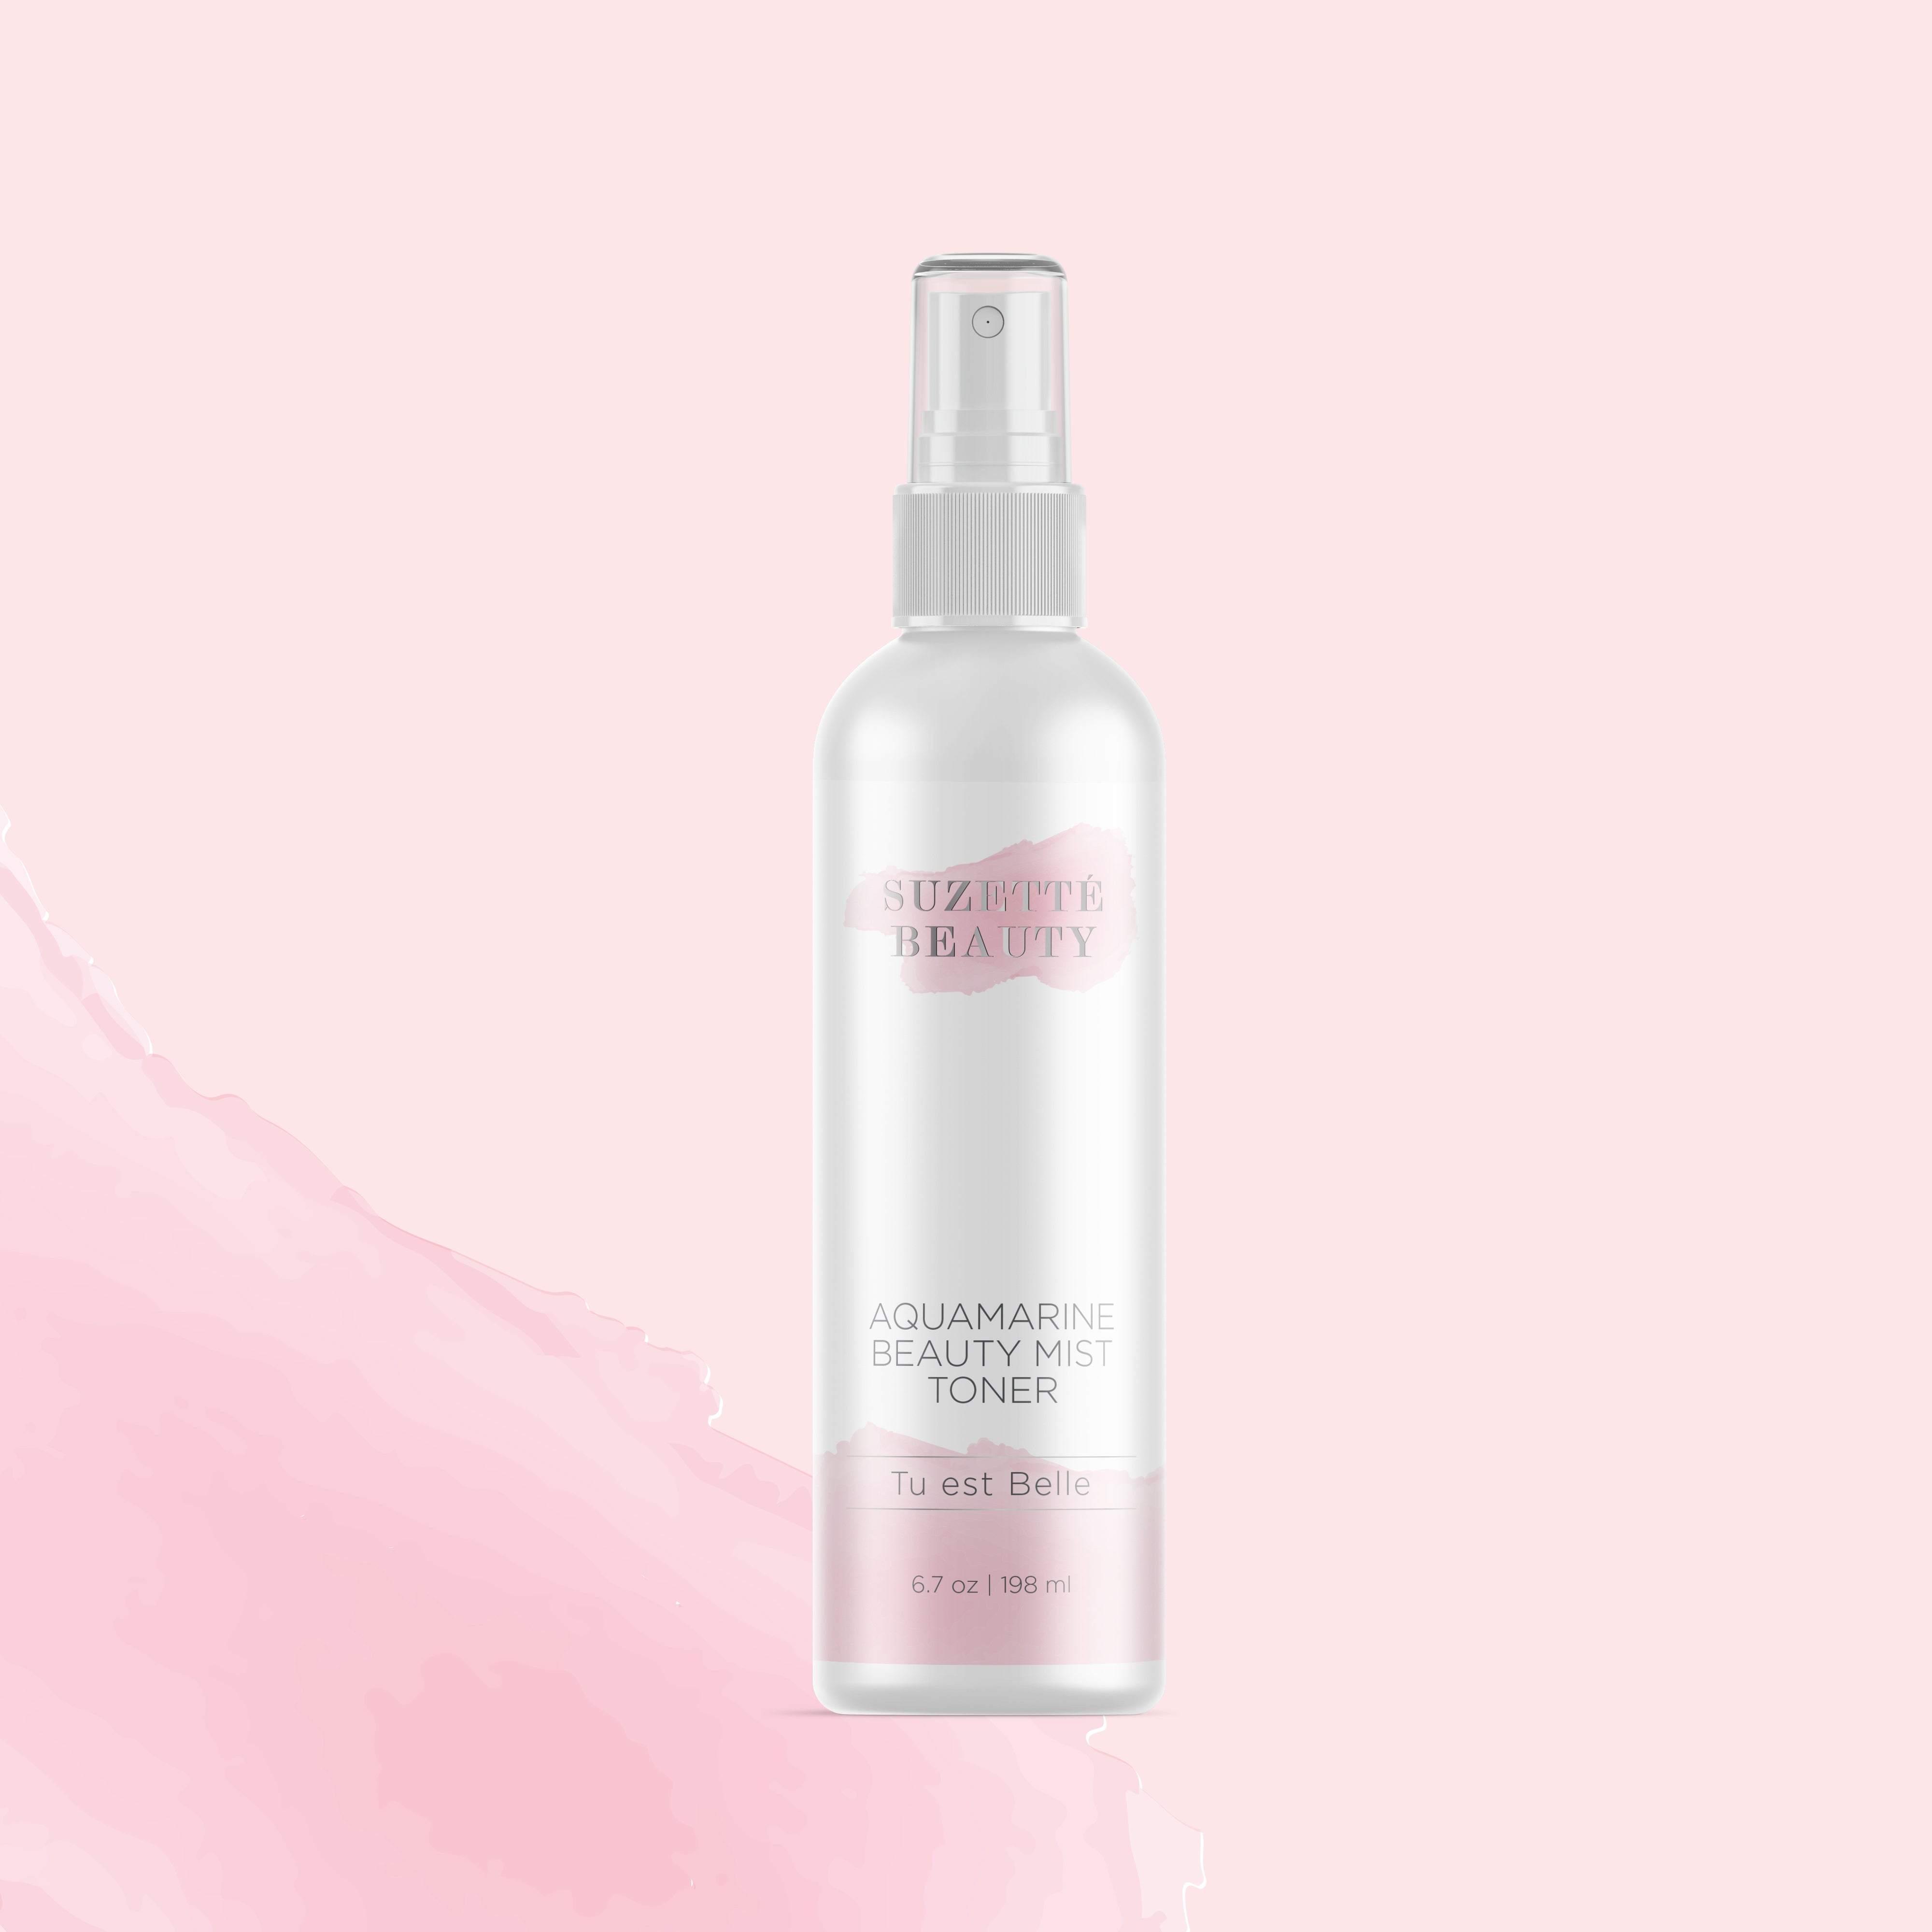 Aquamarine Beauty Mist Toner